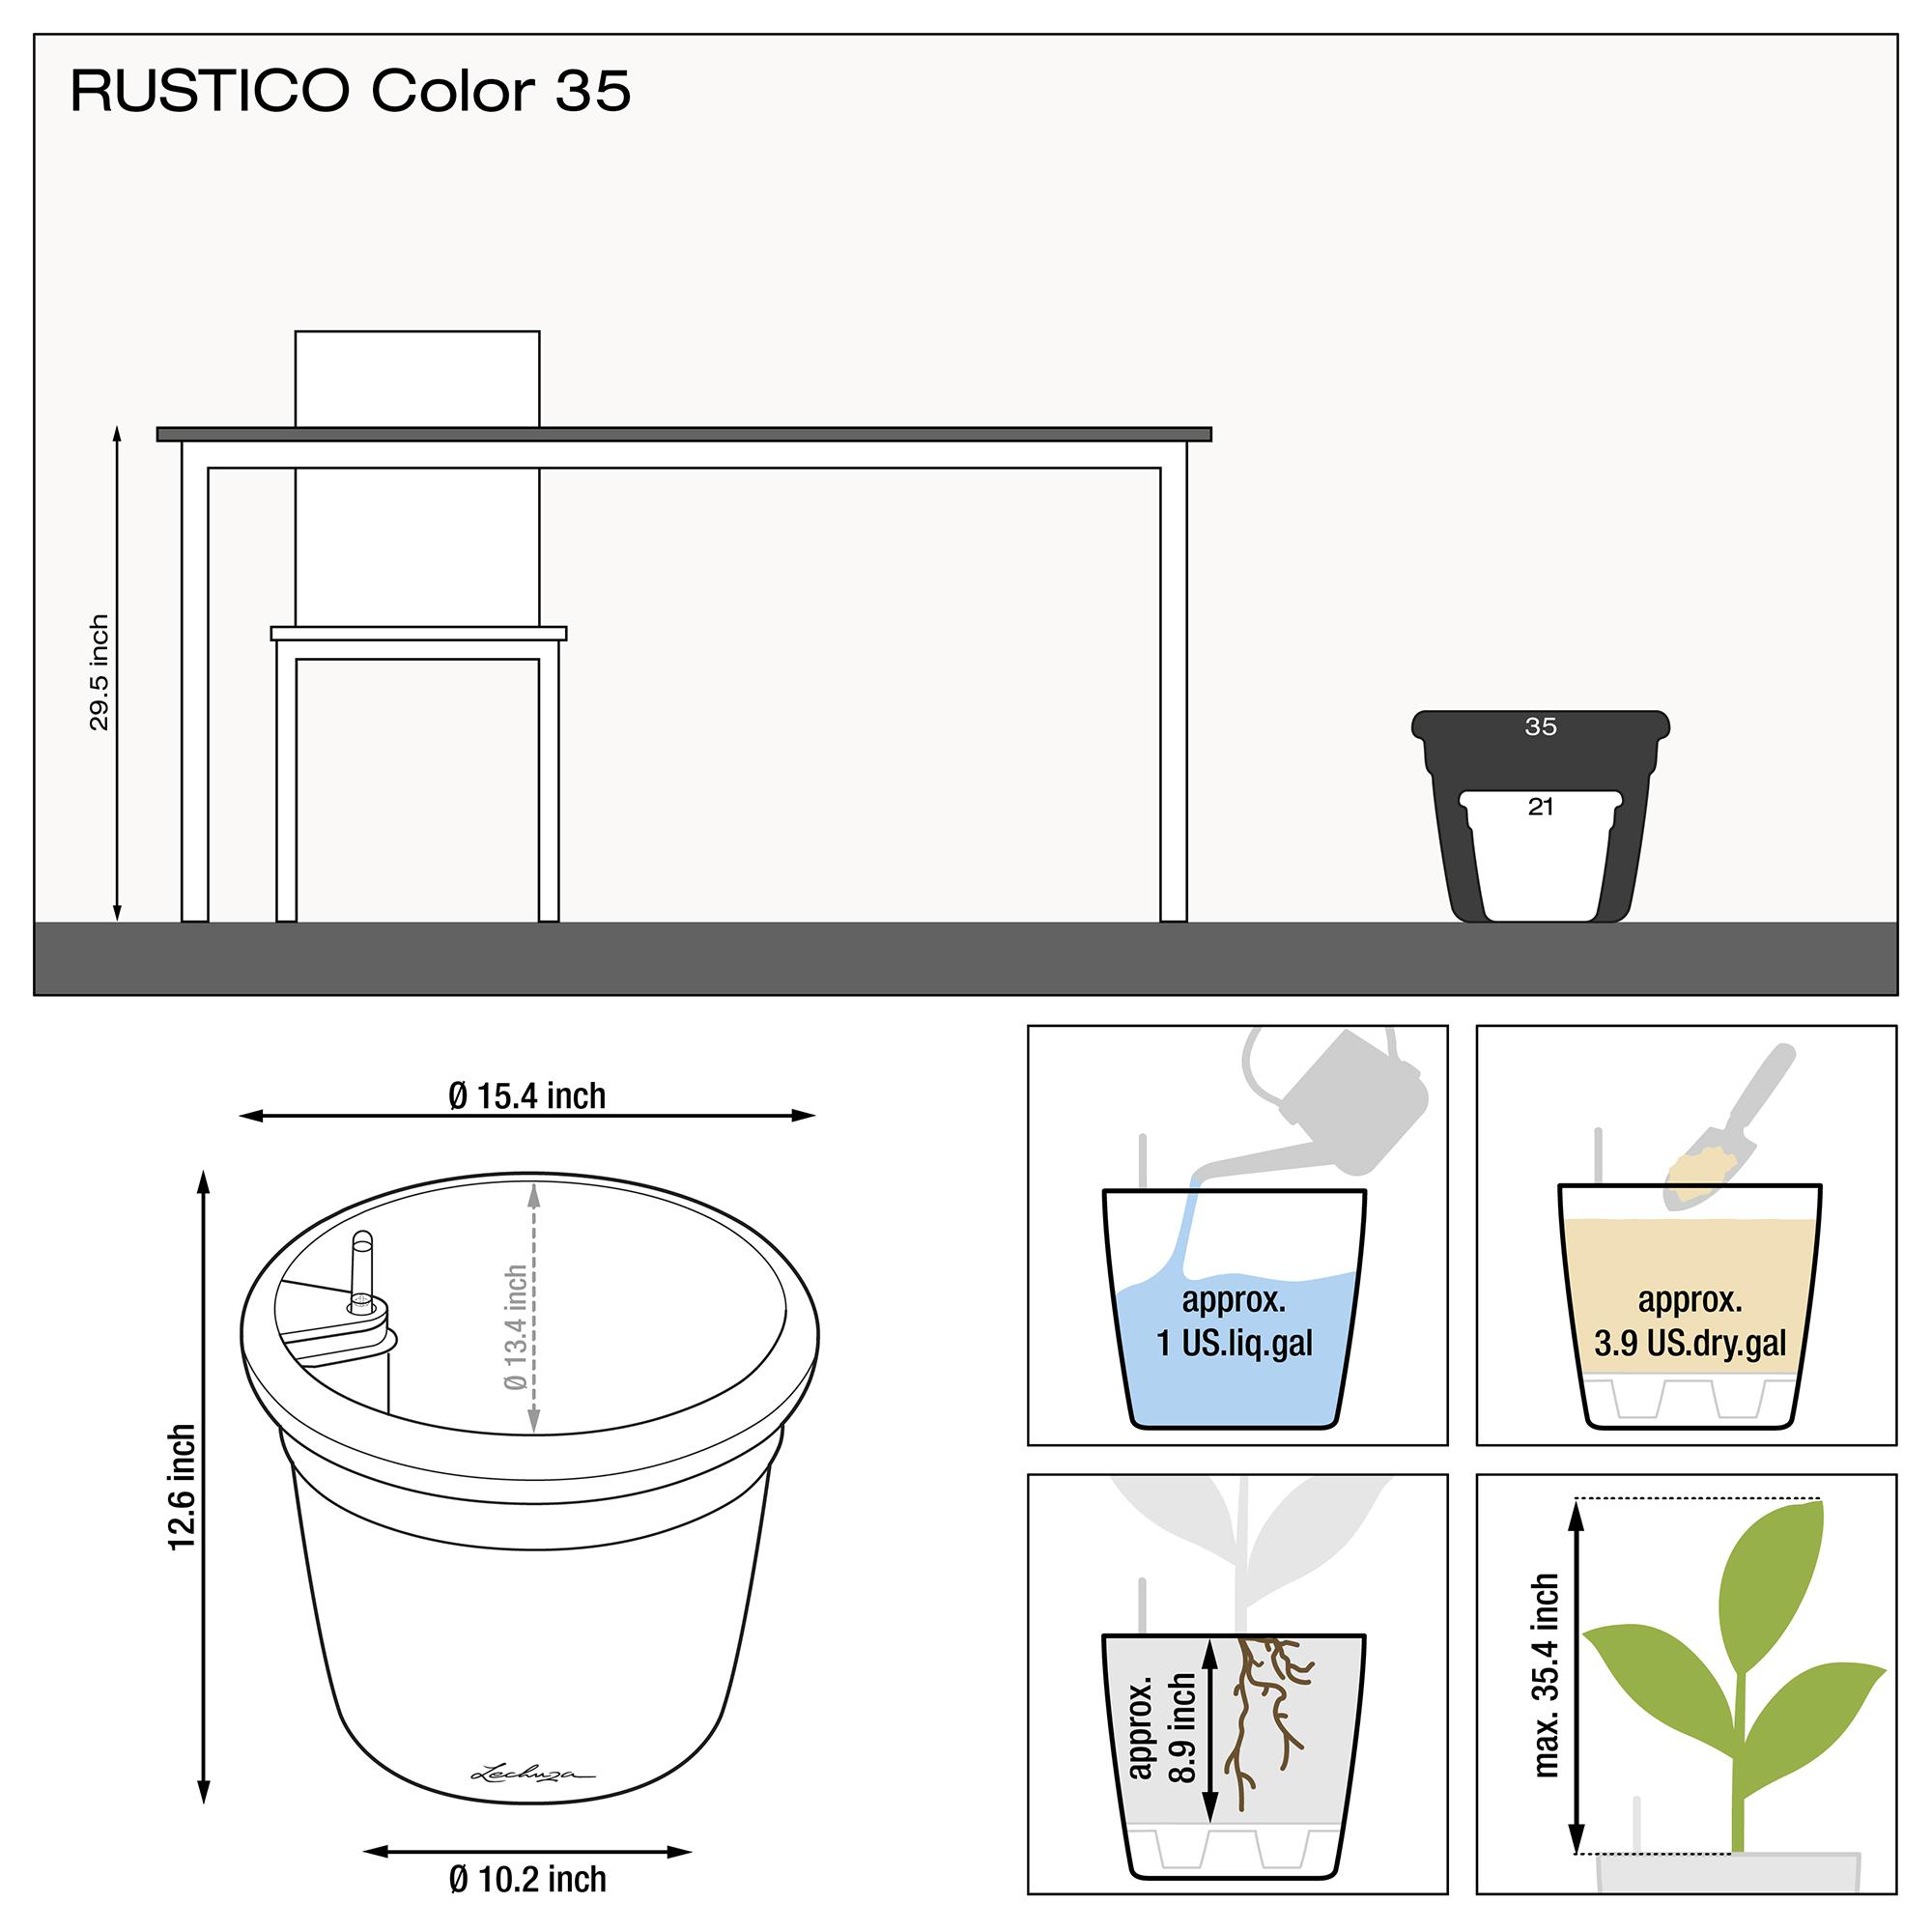 le_rustico-color35_product_addi_nz_us